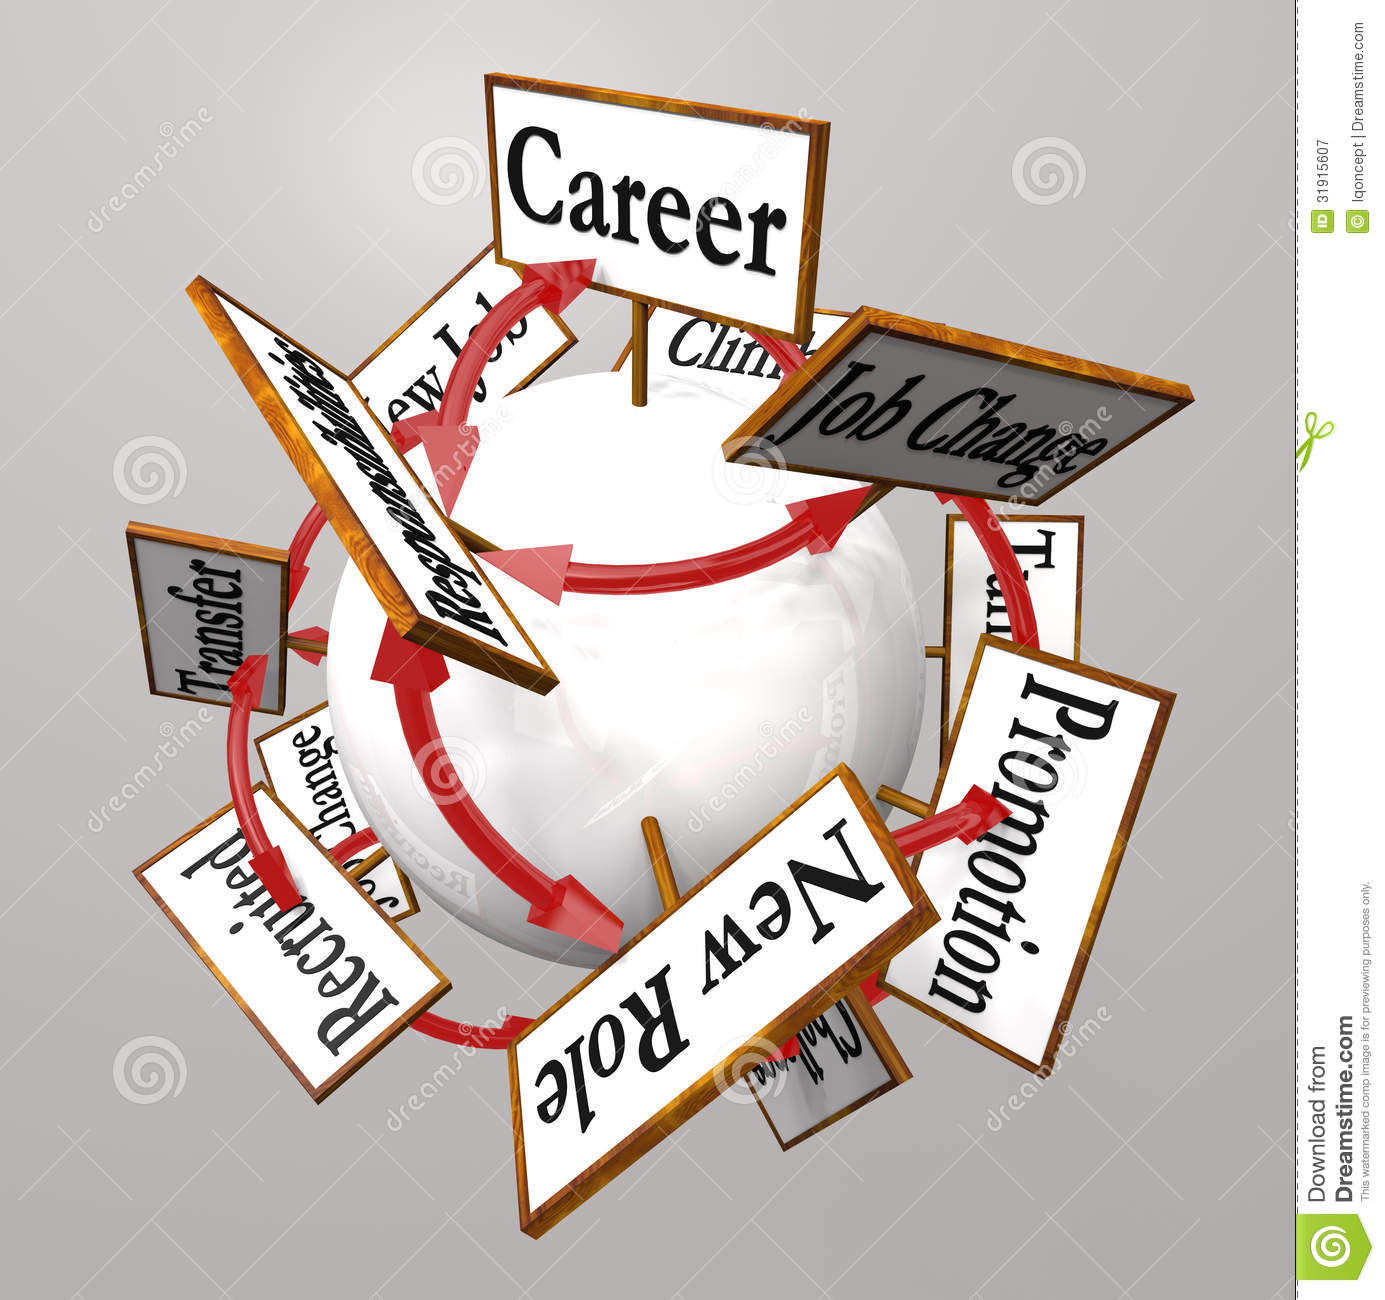 career vs job sphere cubes work opportunity growth development career signs professional job path promotion change royalty stock photography